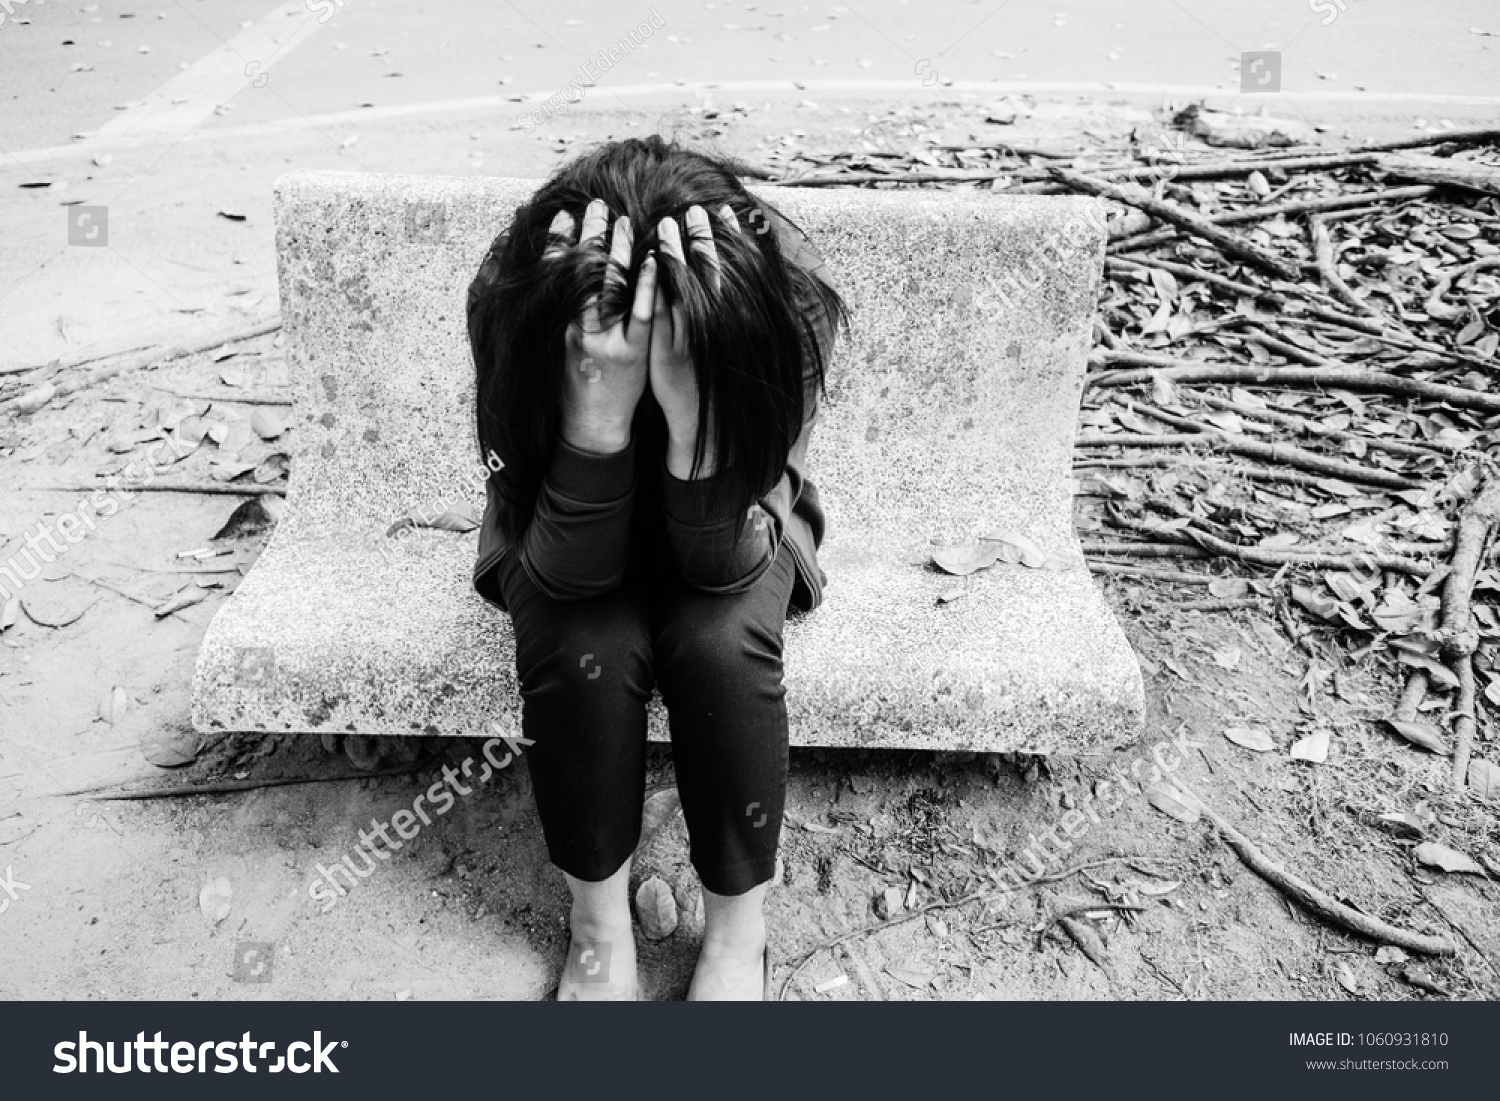 Unhappy Lonely Depressed Woman Contemplating Suicide Stock Photo Edit Now 1060931810